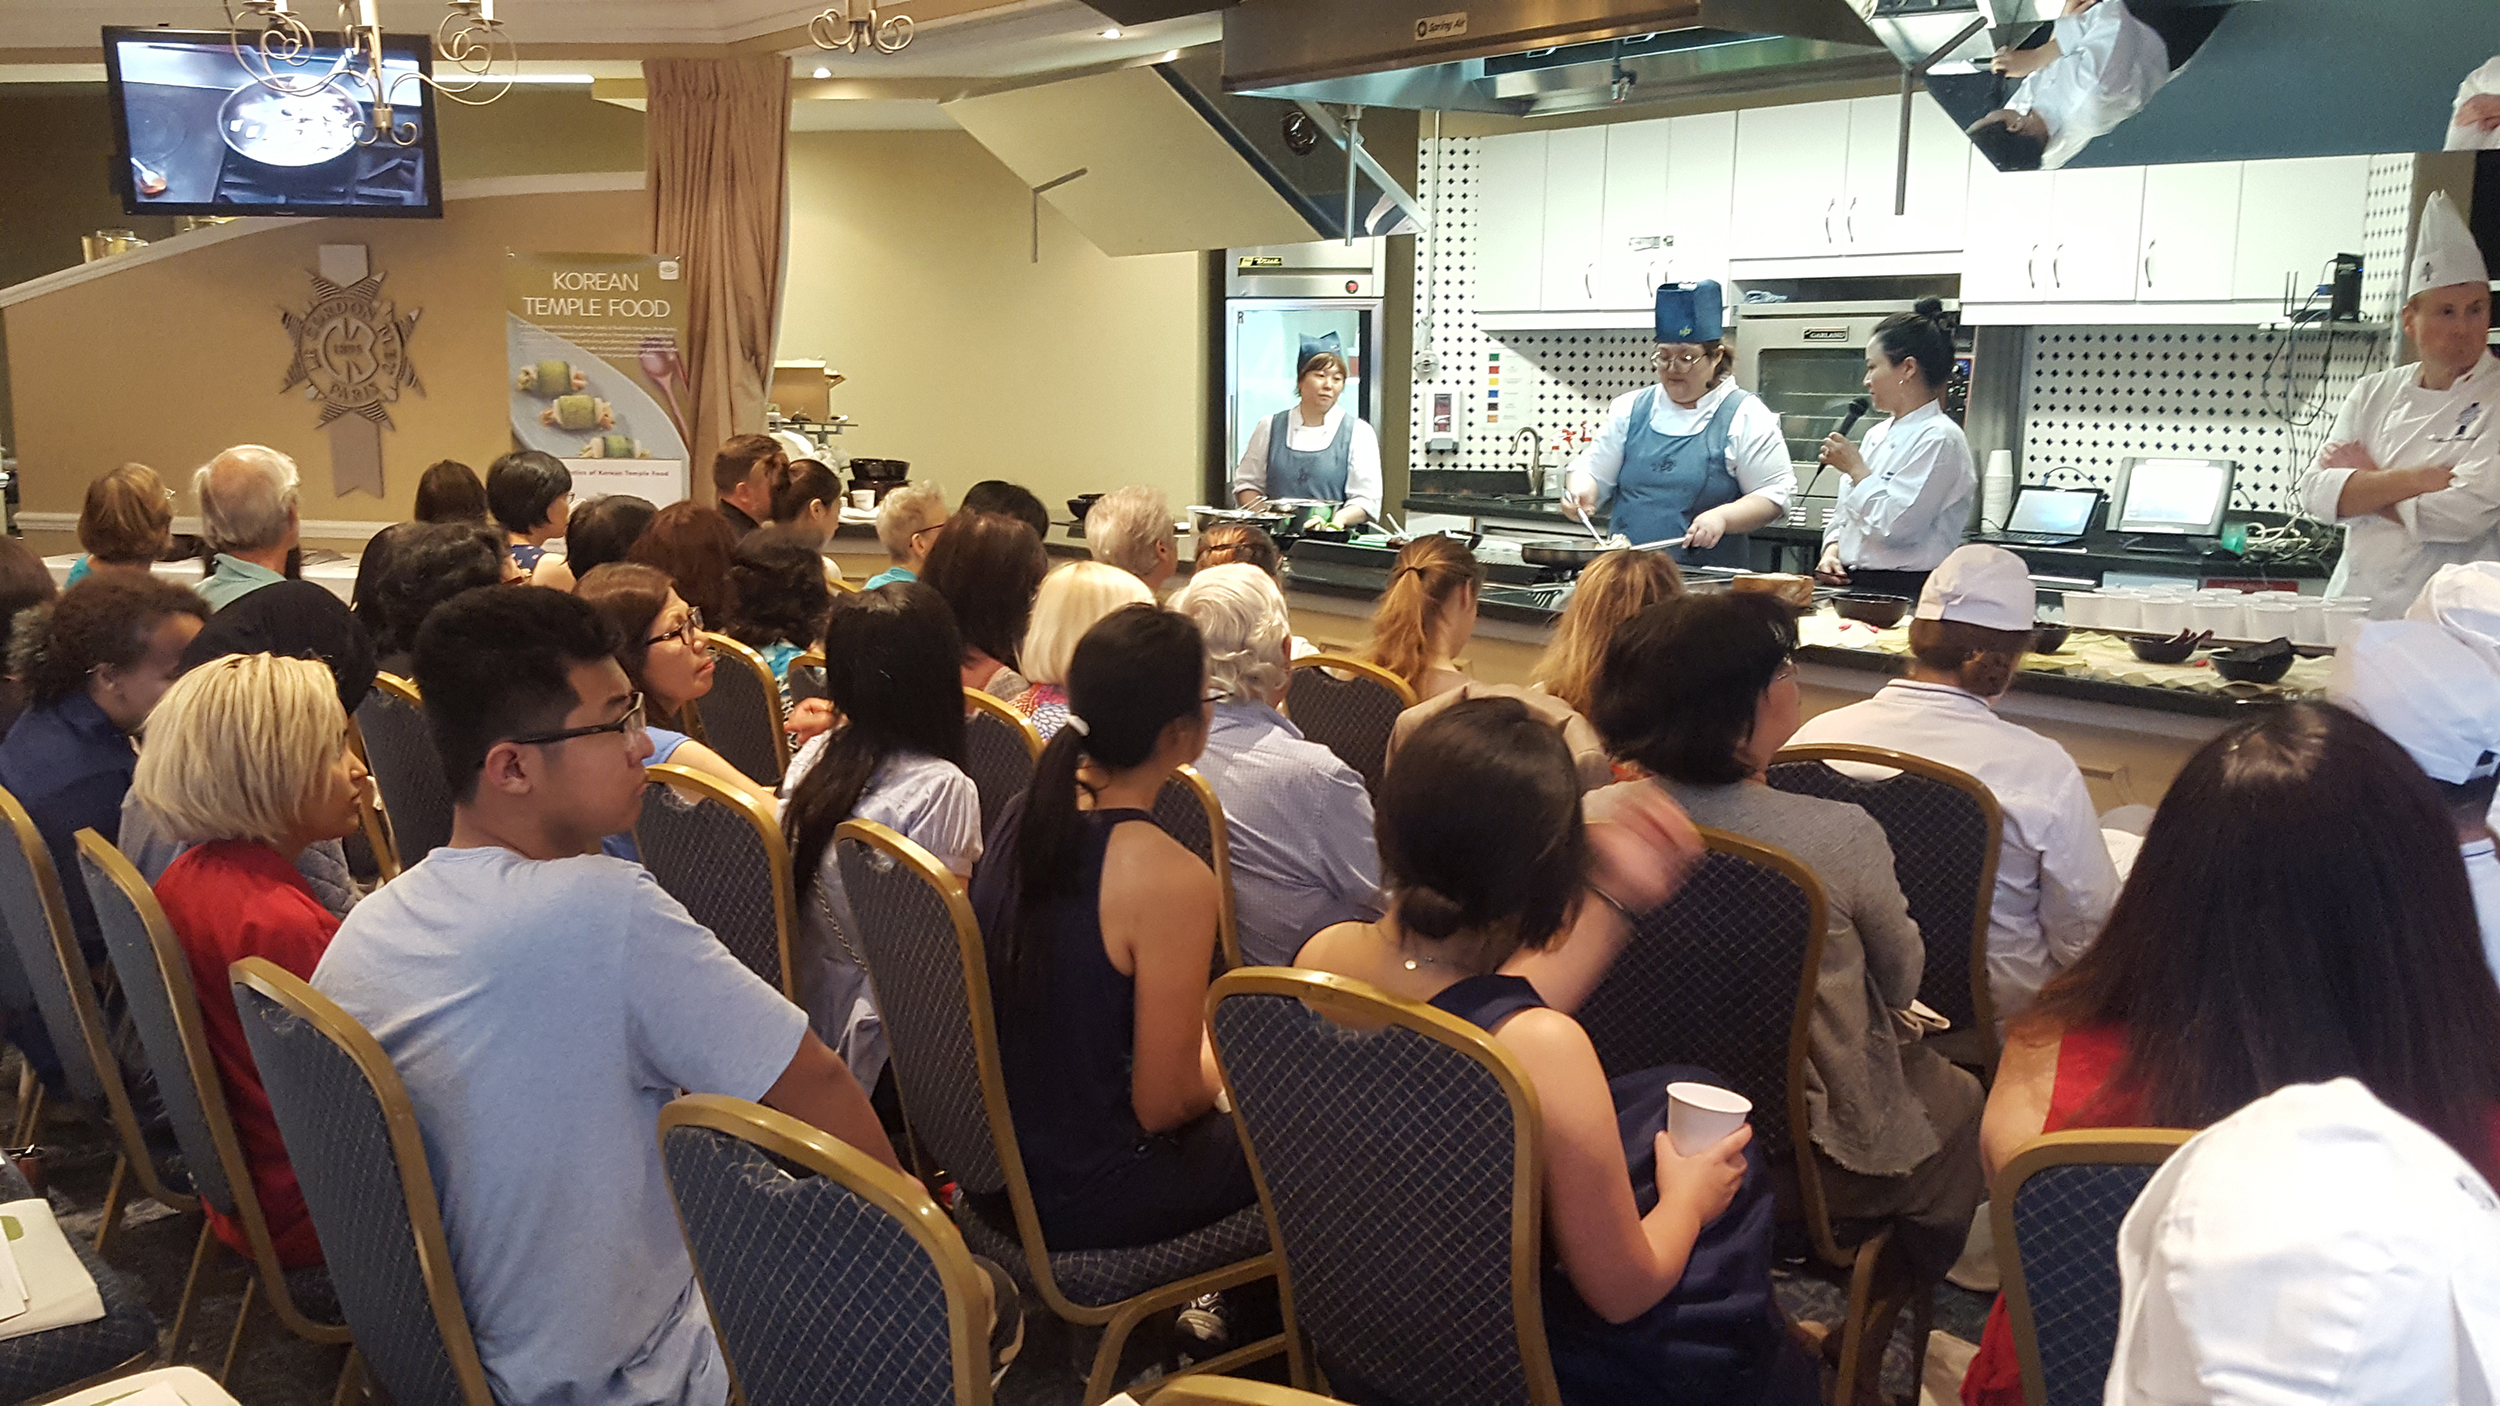 The lecture held at Le Cordon Bleu previous year